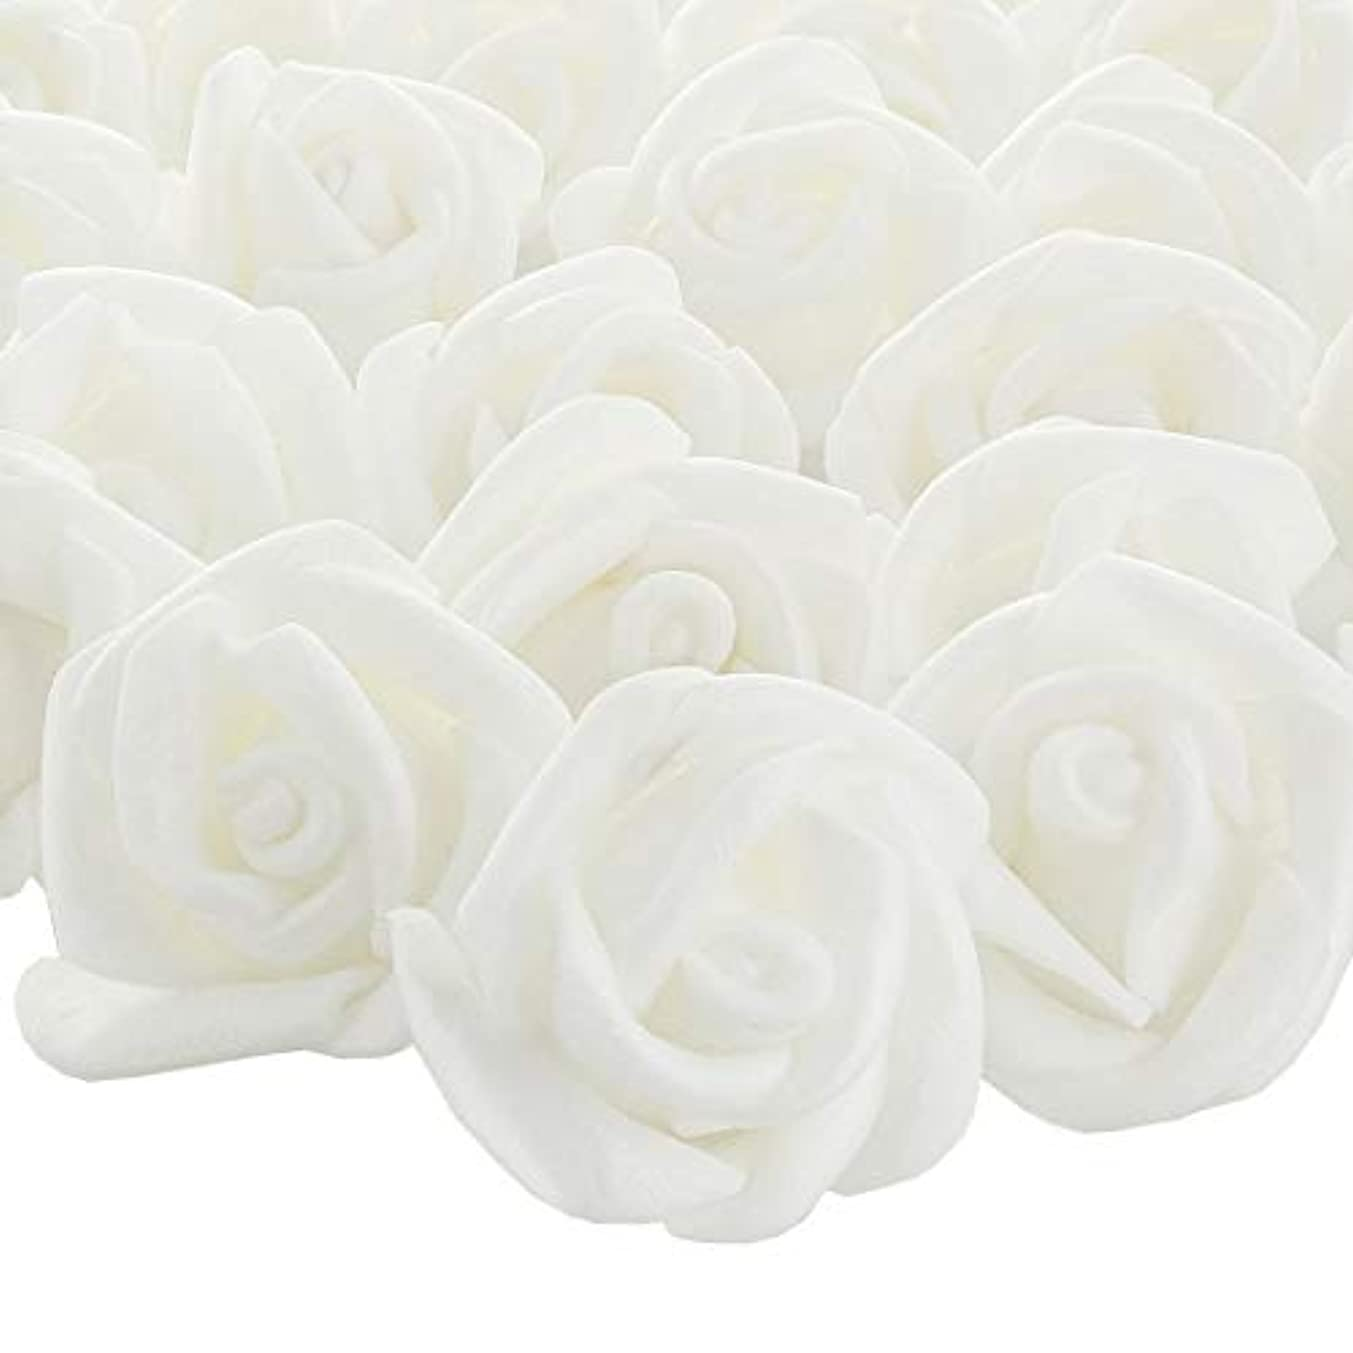 Bright Creations 200-Pack White Rose Flower Heads for DIY Crafts, Weddings, Decor, 3 x 2.5 Centimeters